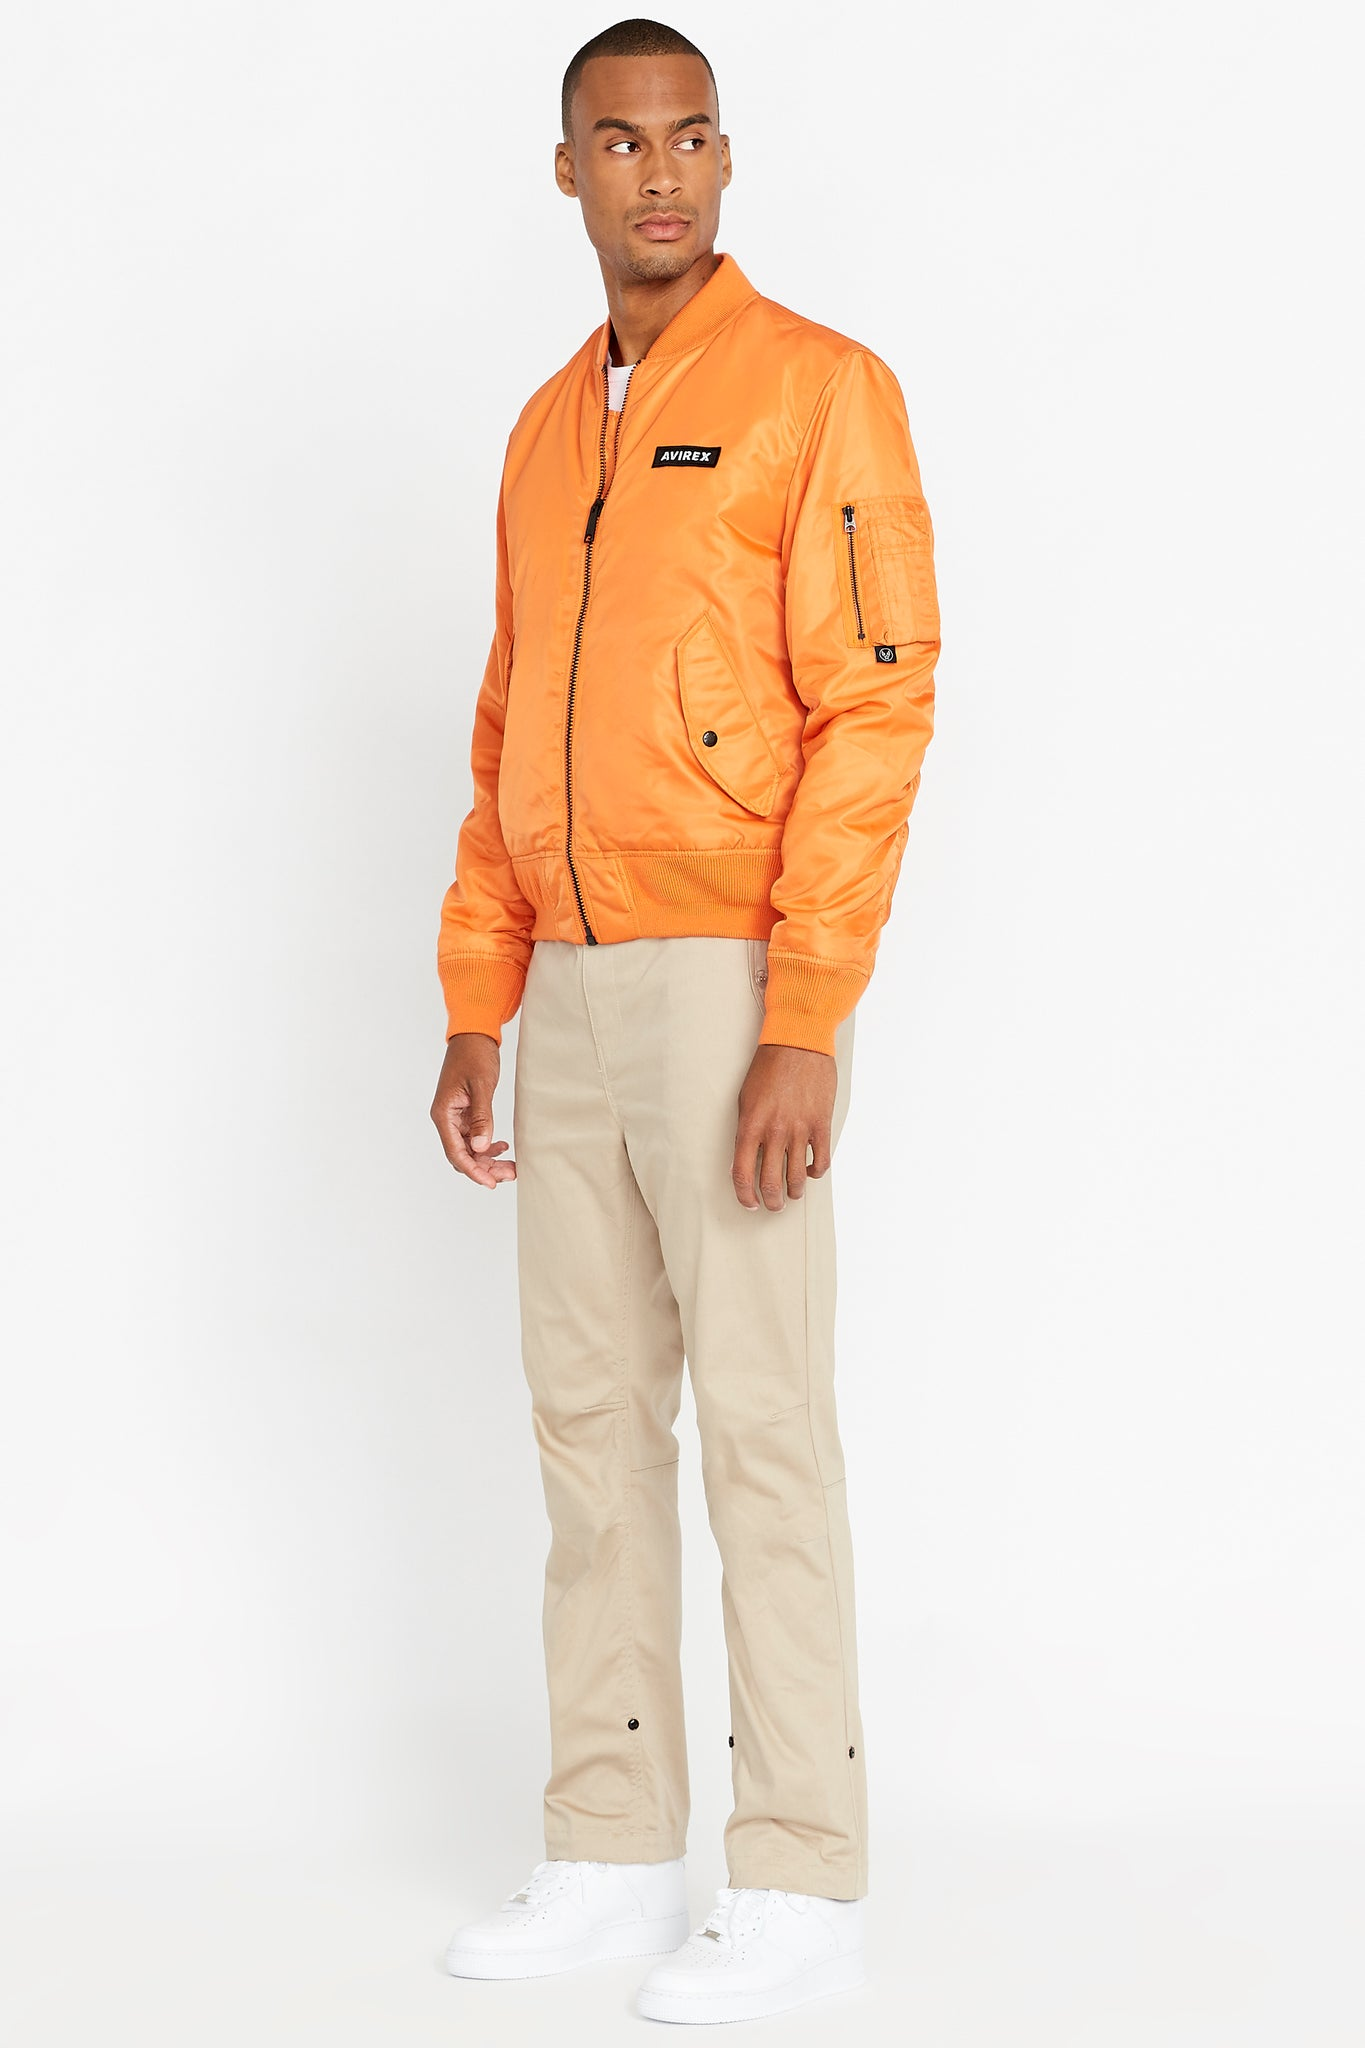 Side full view of men wearing a fully zipped orange original aviation bomber nylon jacket with Iconic utility pocket on sleeve and two side pockets and light beige pants